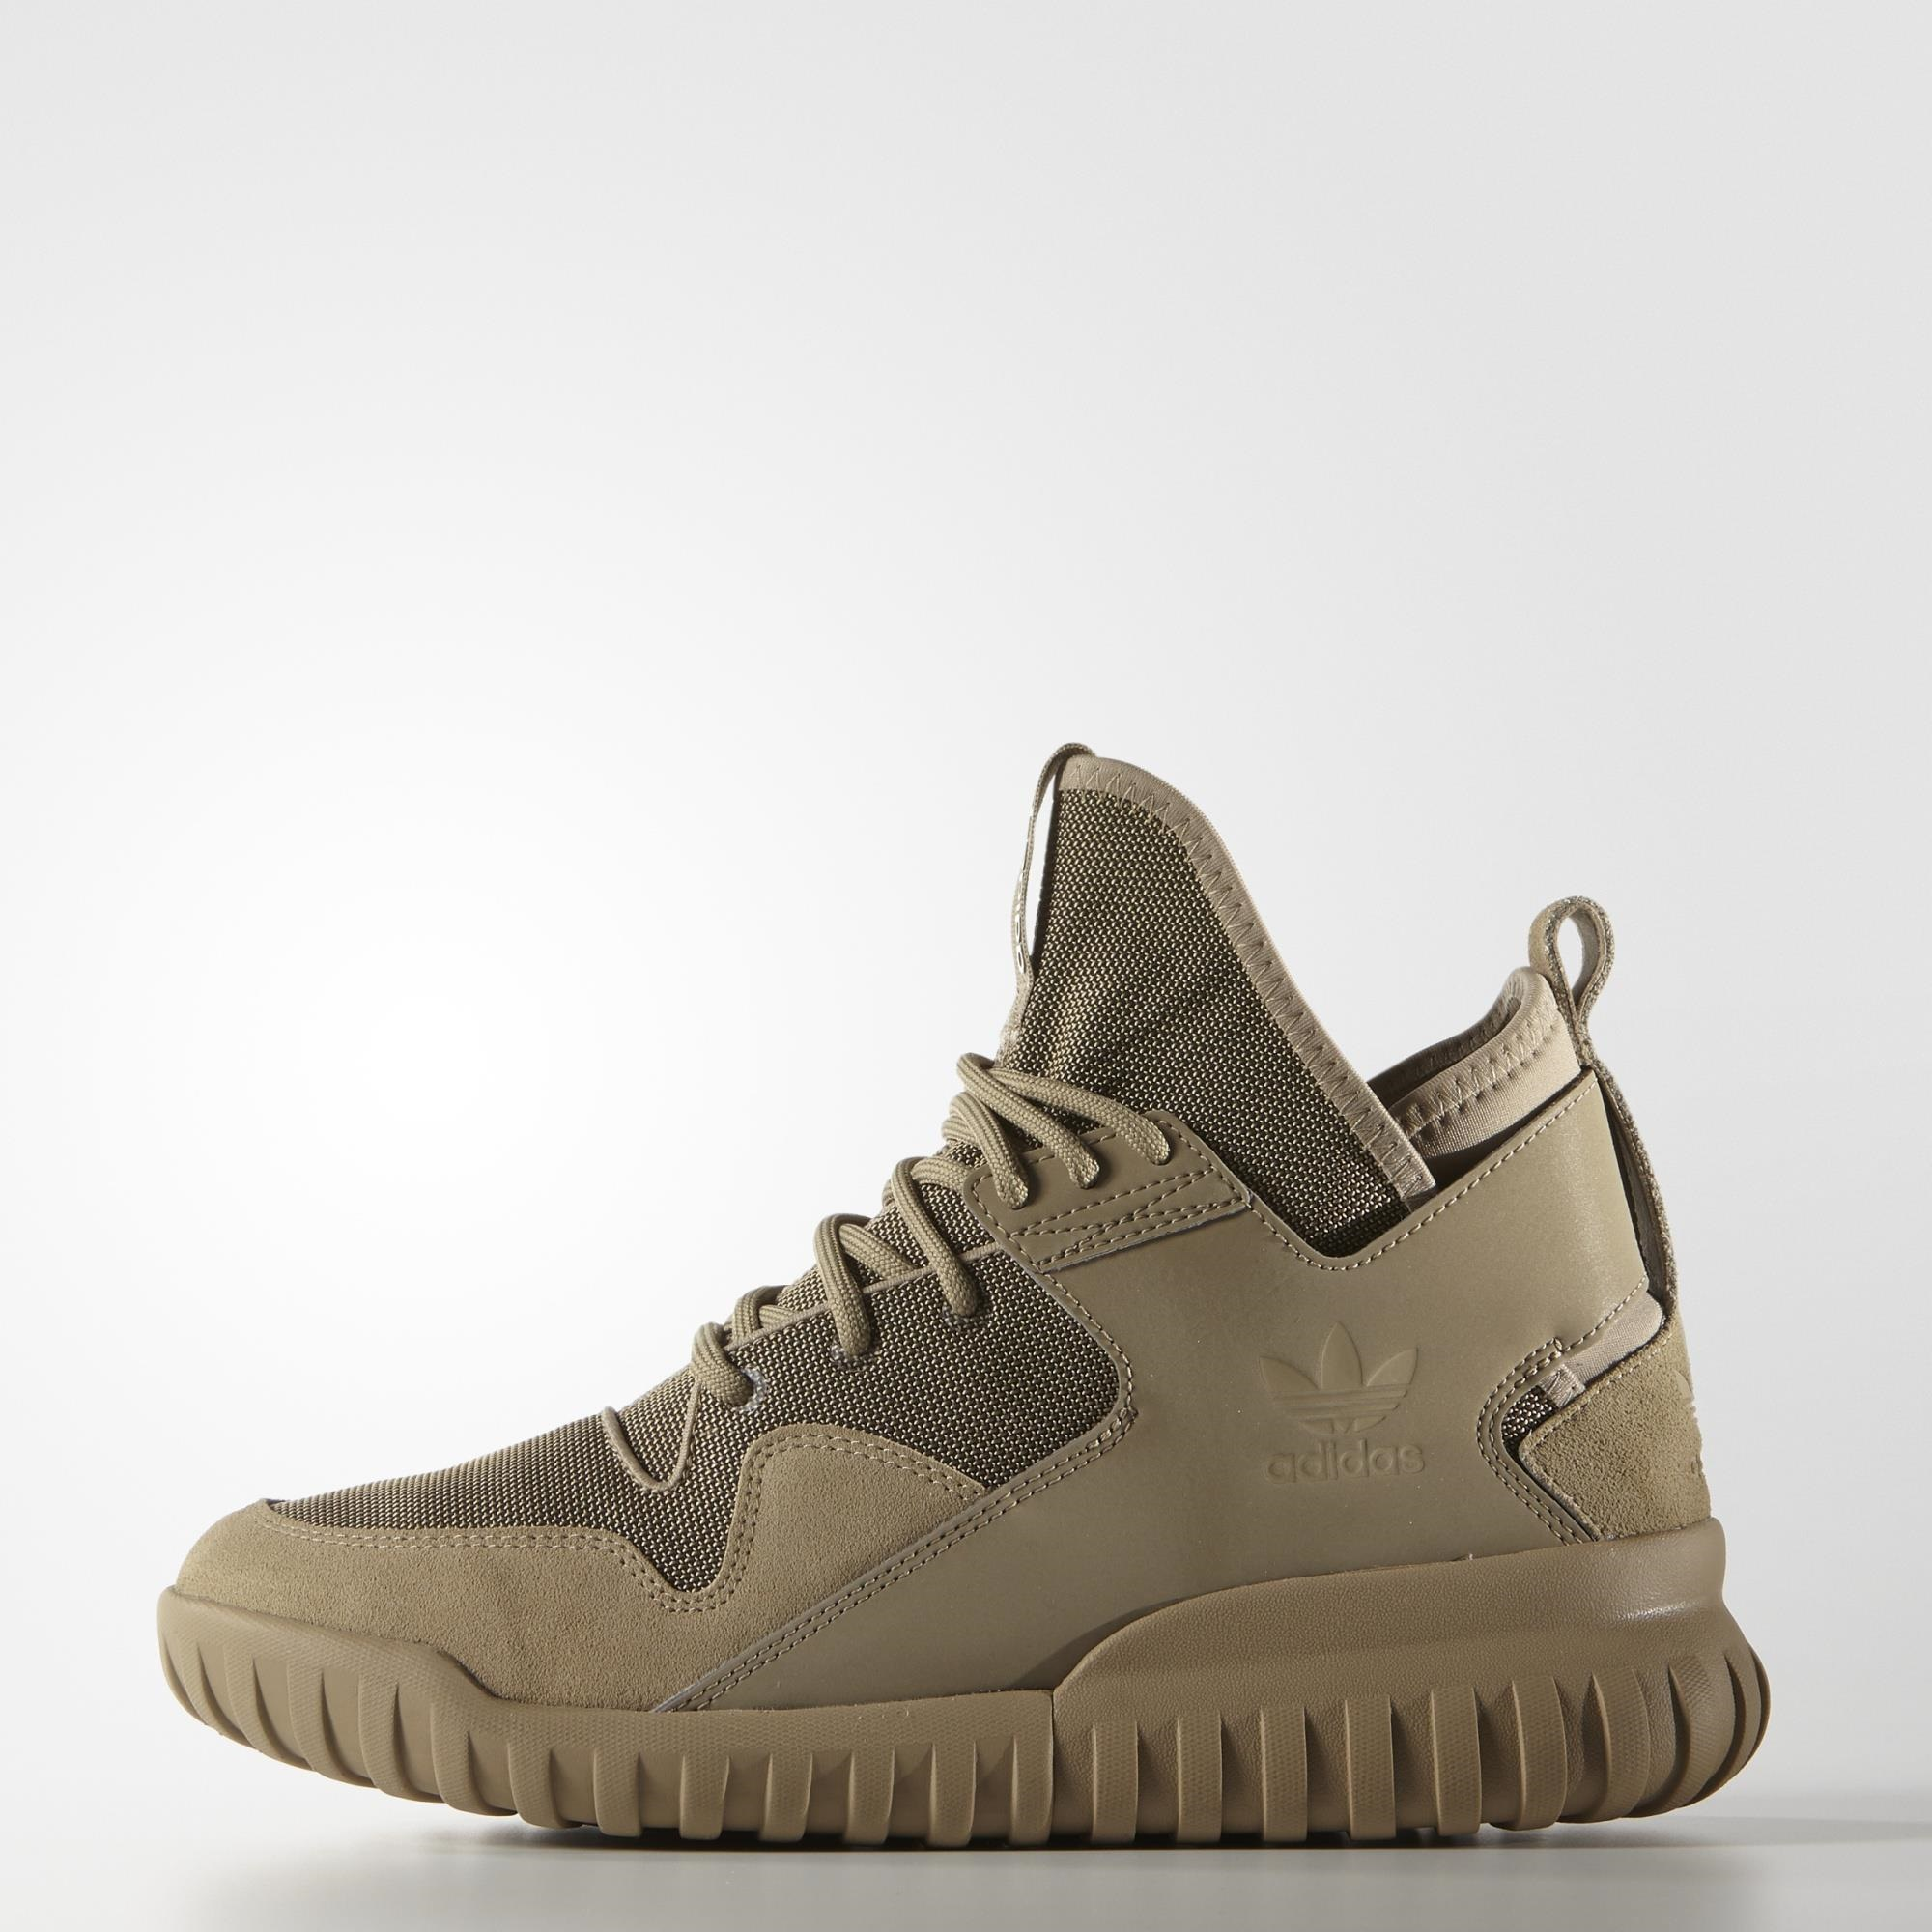 76ba4793f09a adidas Tubular X Shoes - Hemp